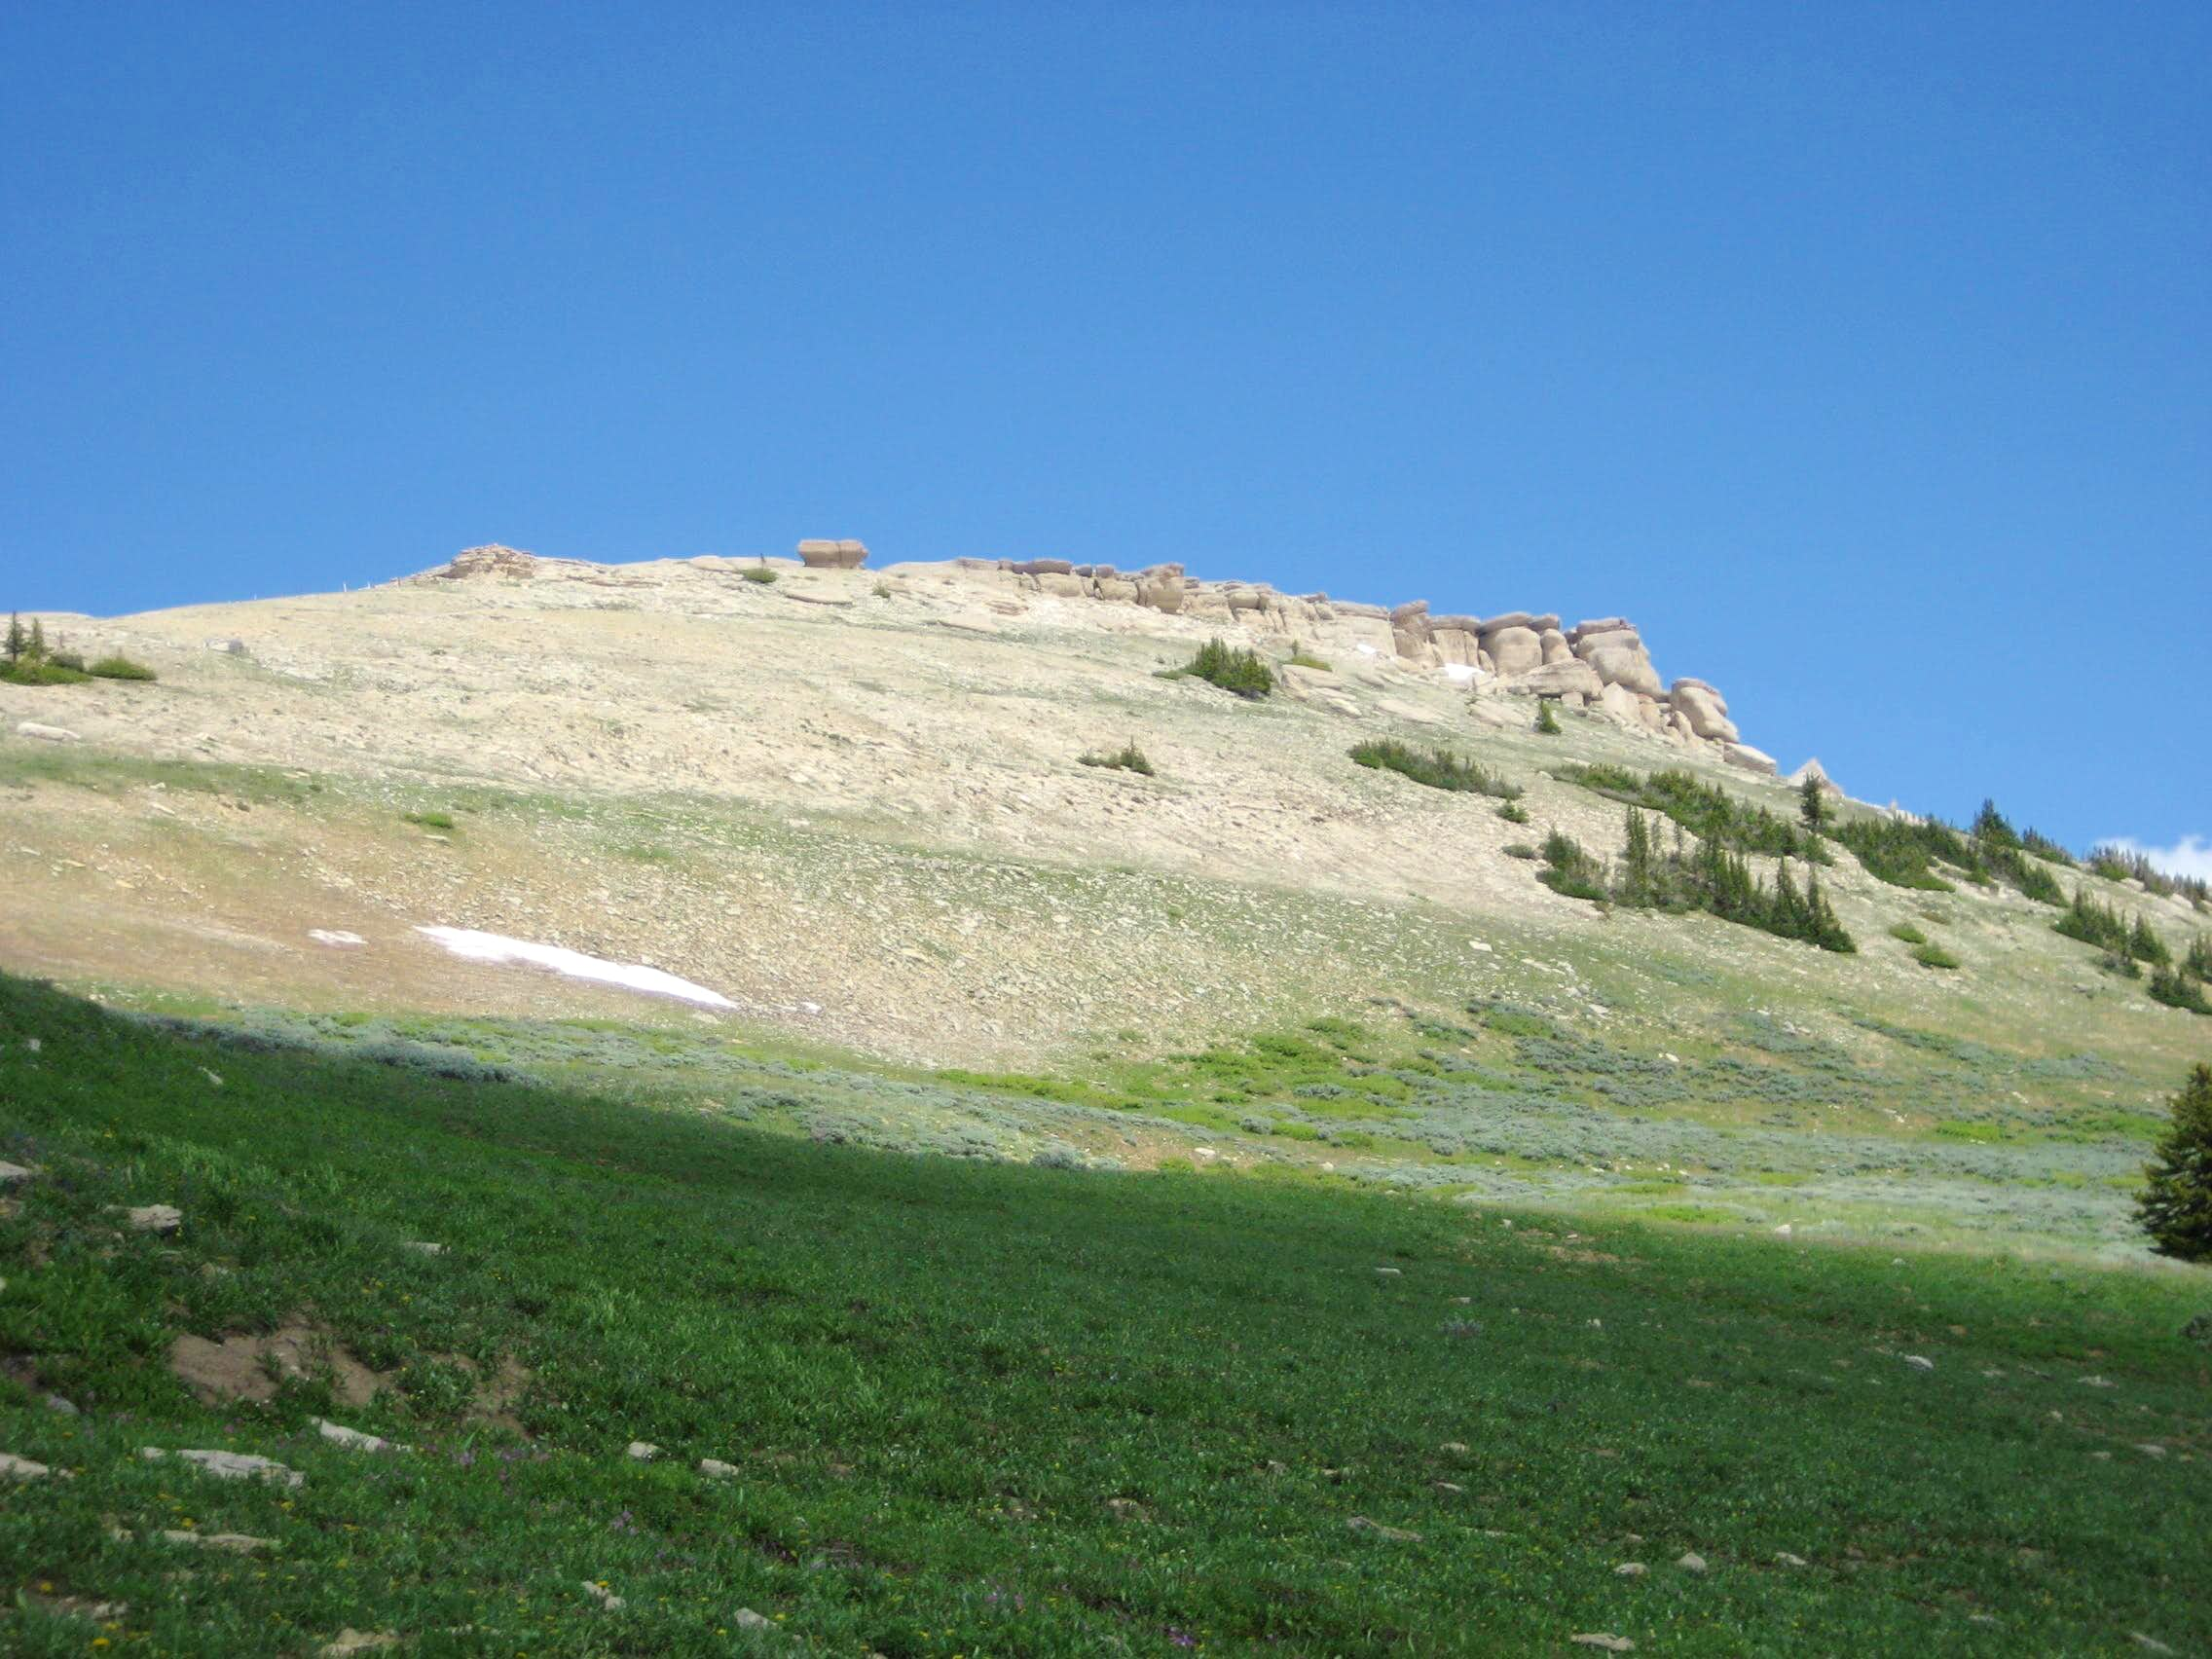 Duncum Mountain